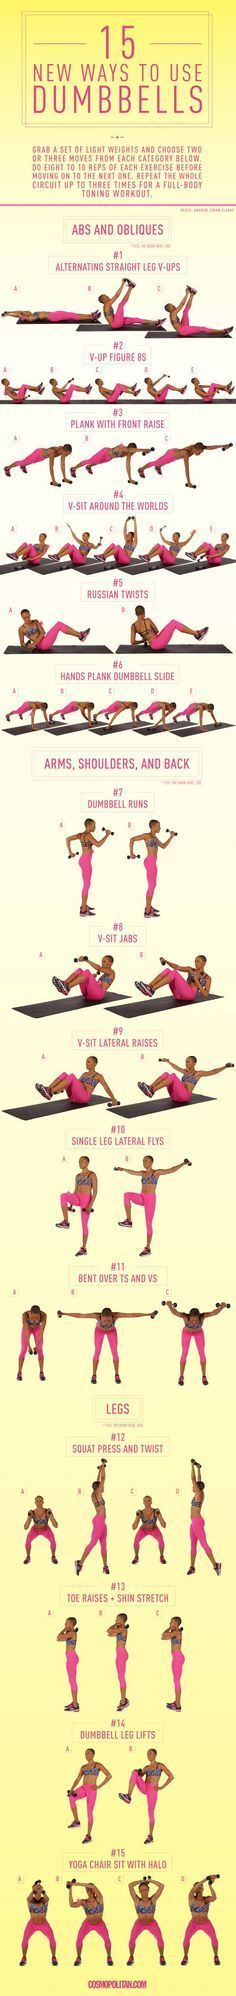 15 New Ways to Use Dumbbells in basic to more advanced exercise. Great way to add strength training to any workout.